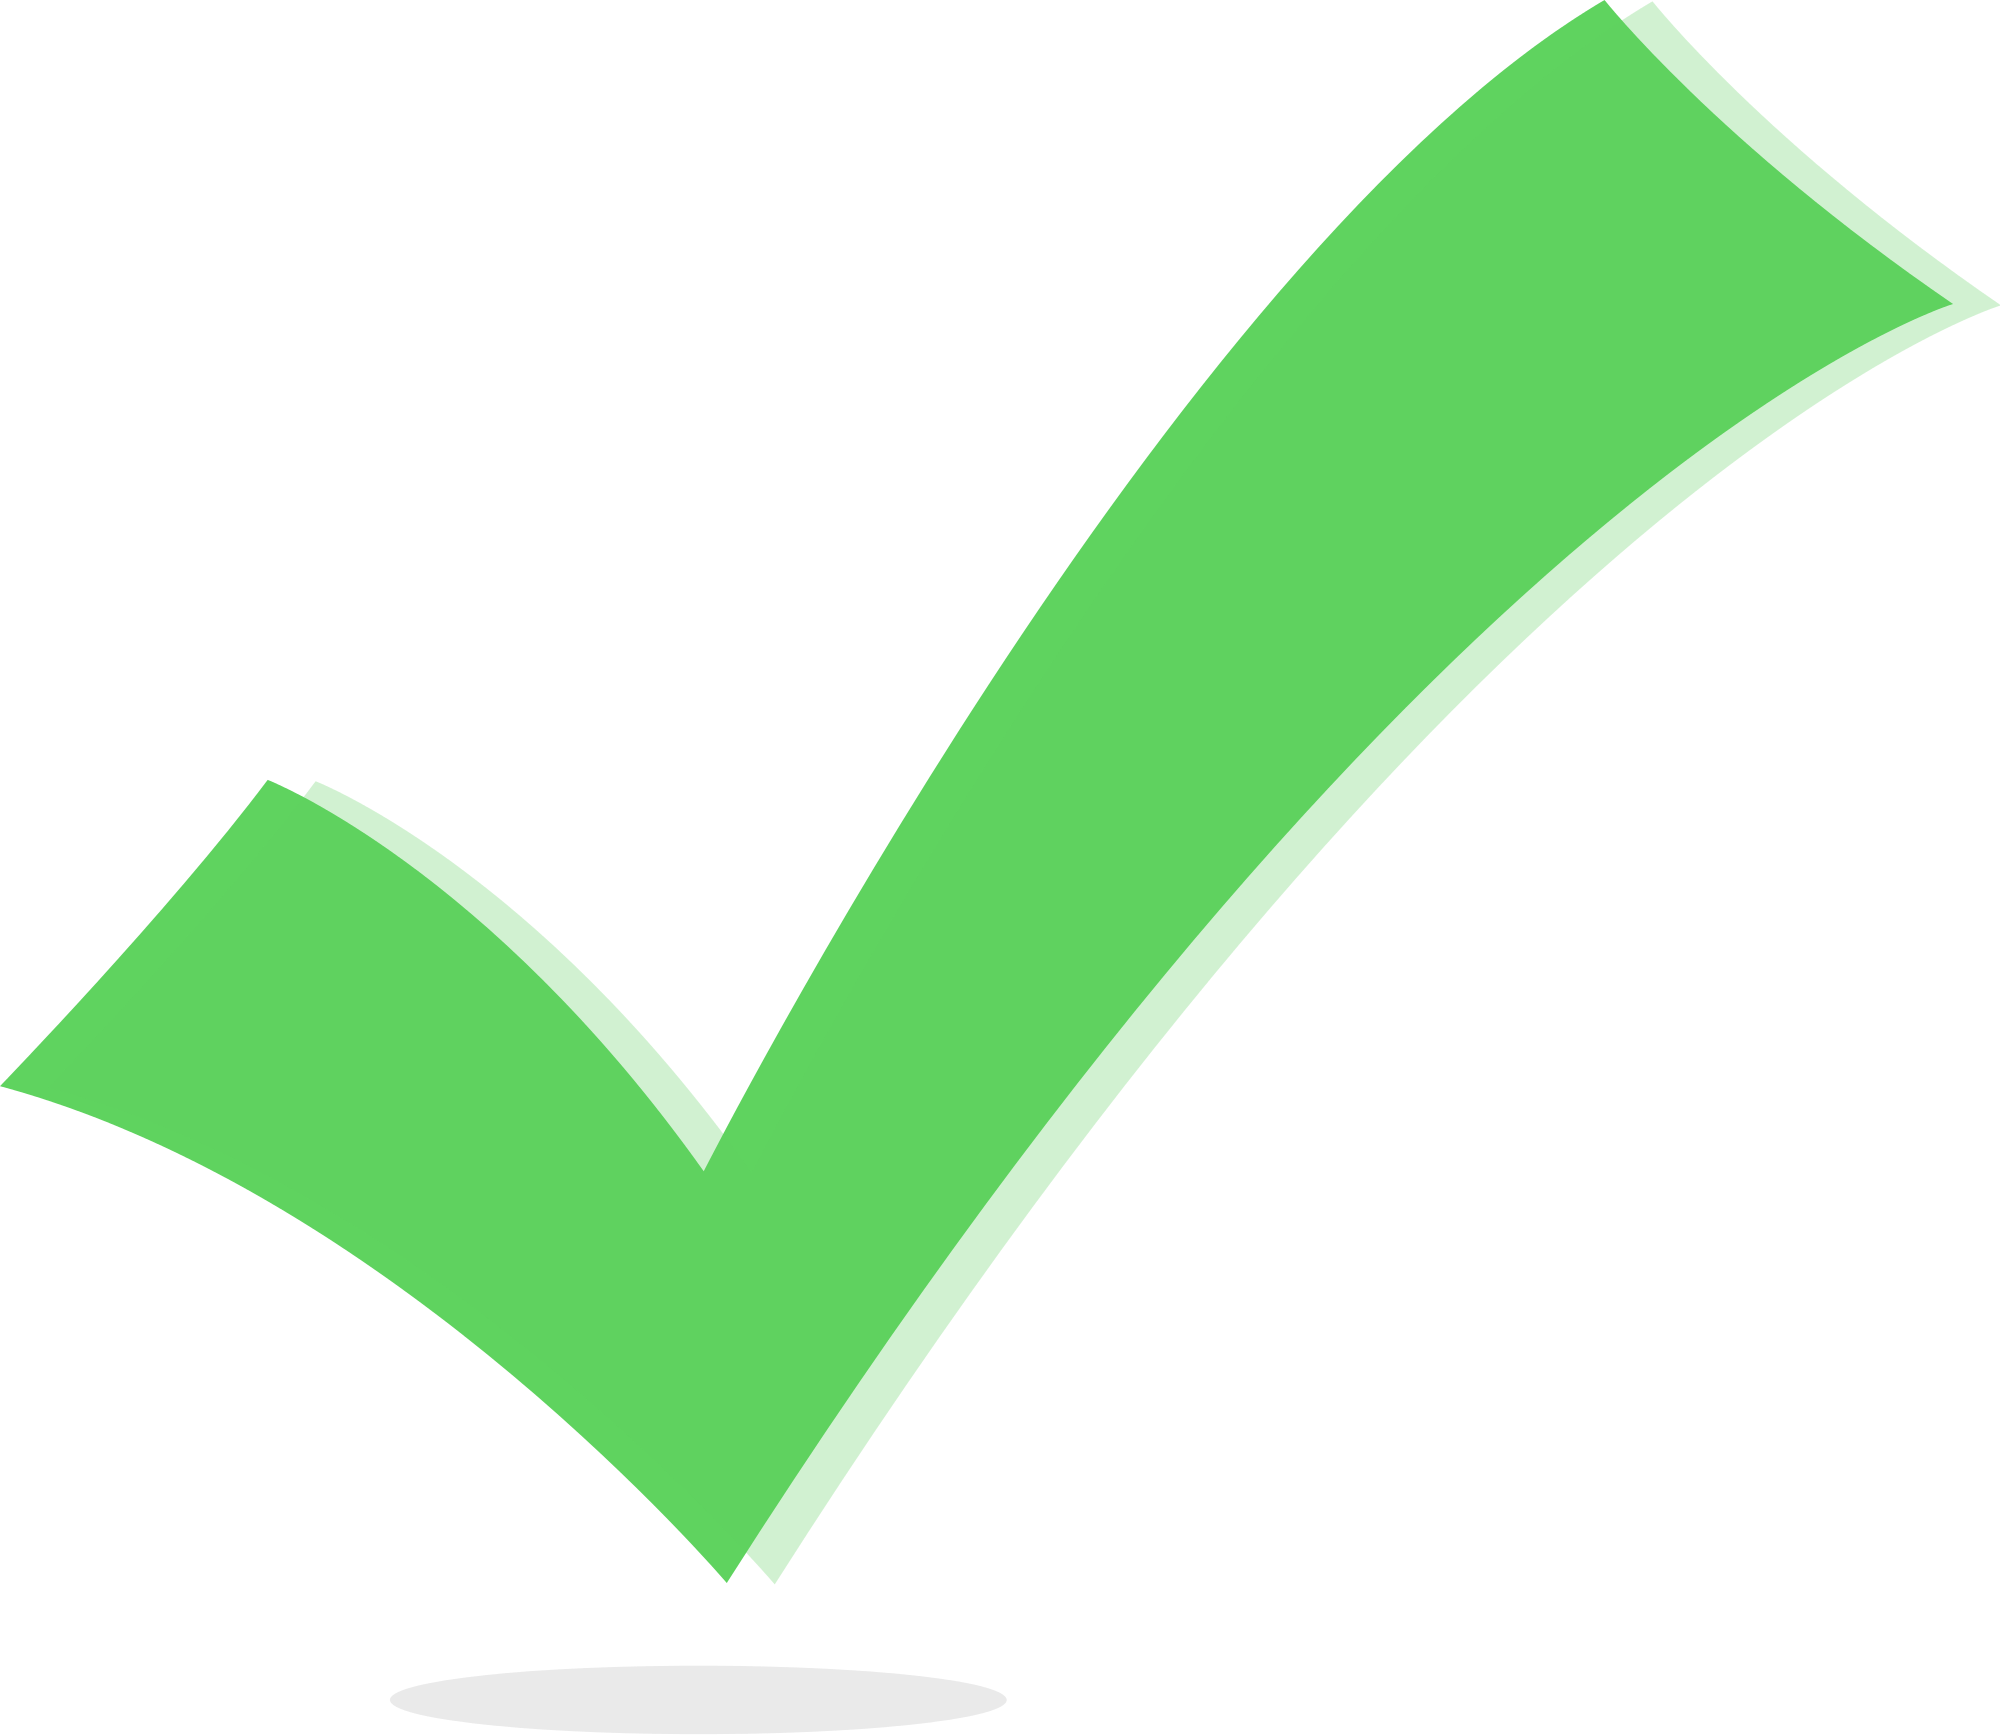 Green Checkmark Icon Png image #45022